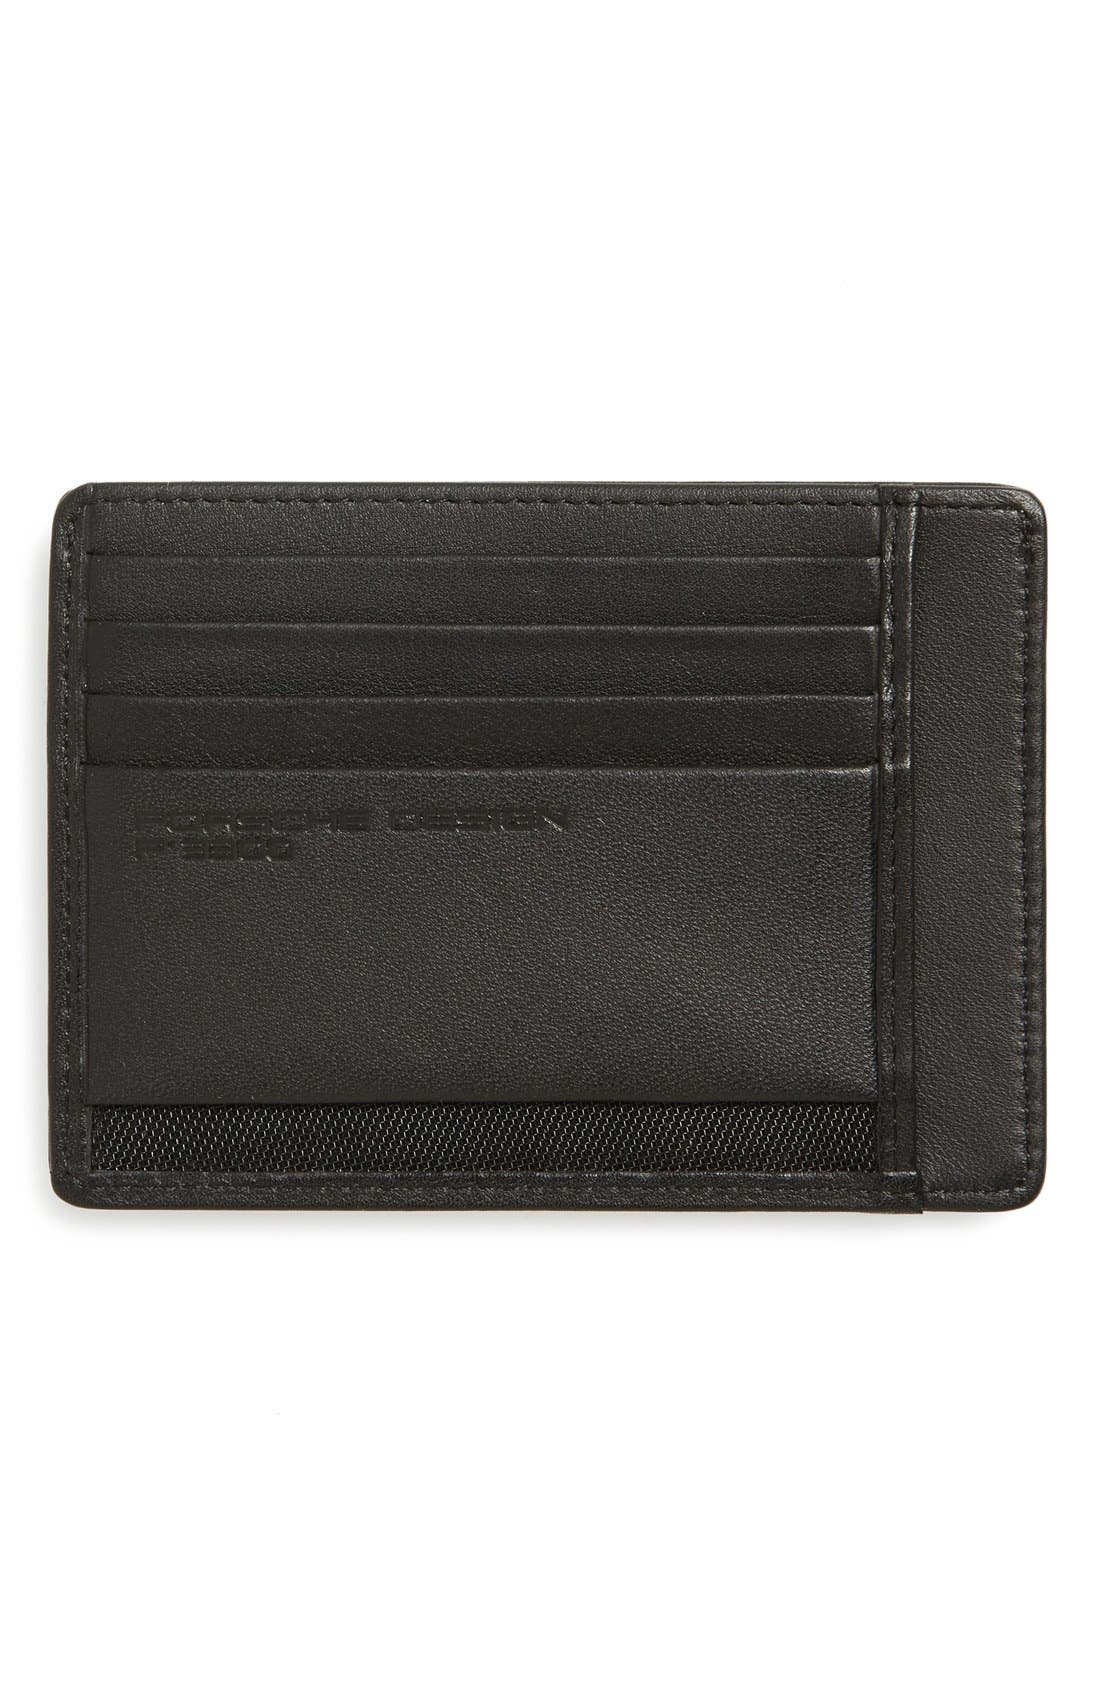 'CL2 2.0' Leather Card Holder,                             Alternate thumbnail 2, color,                             001